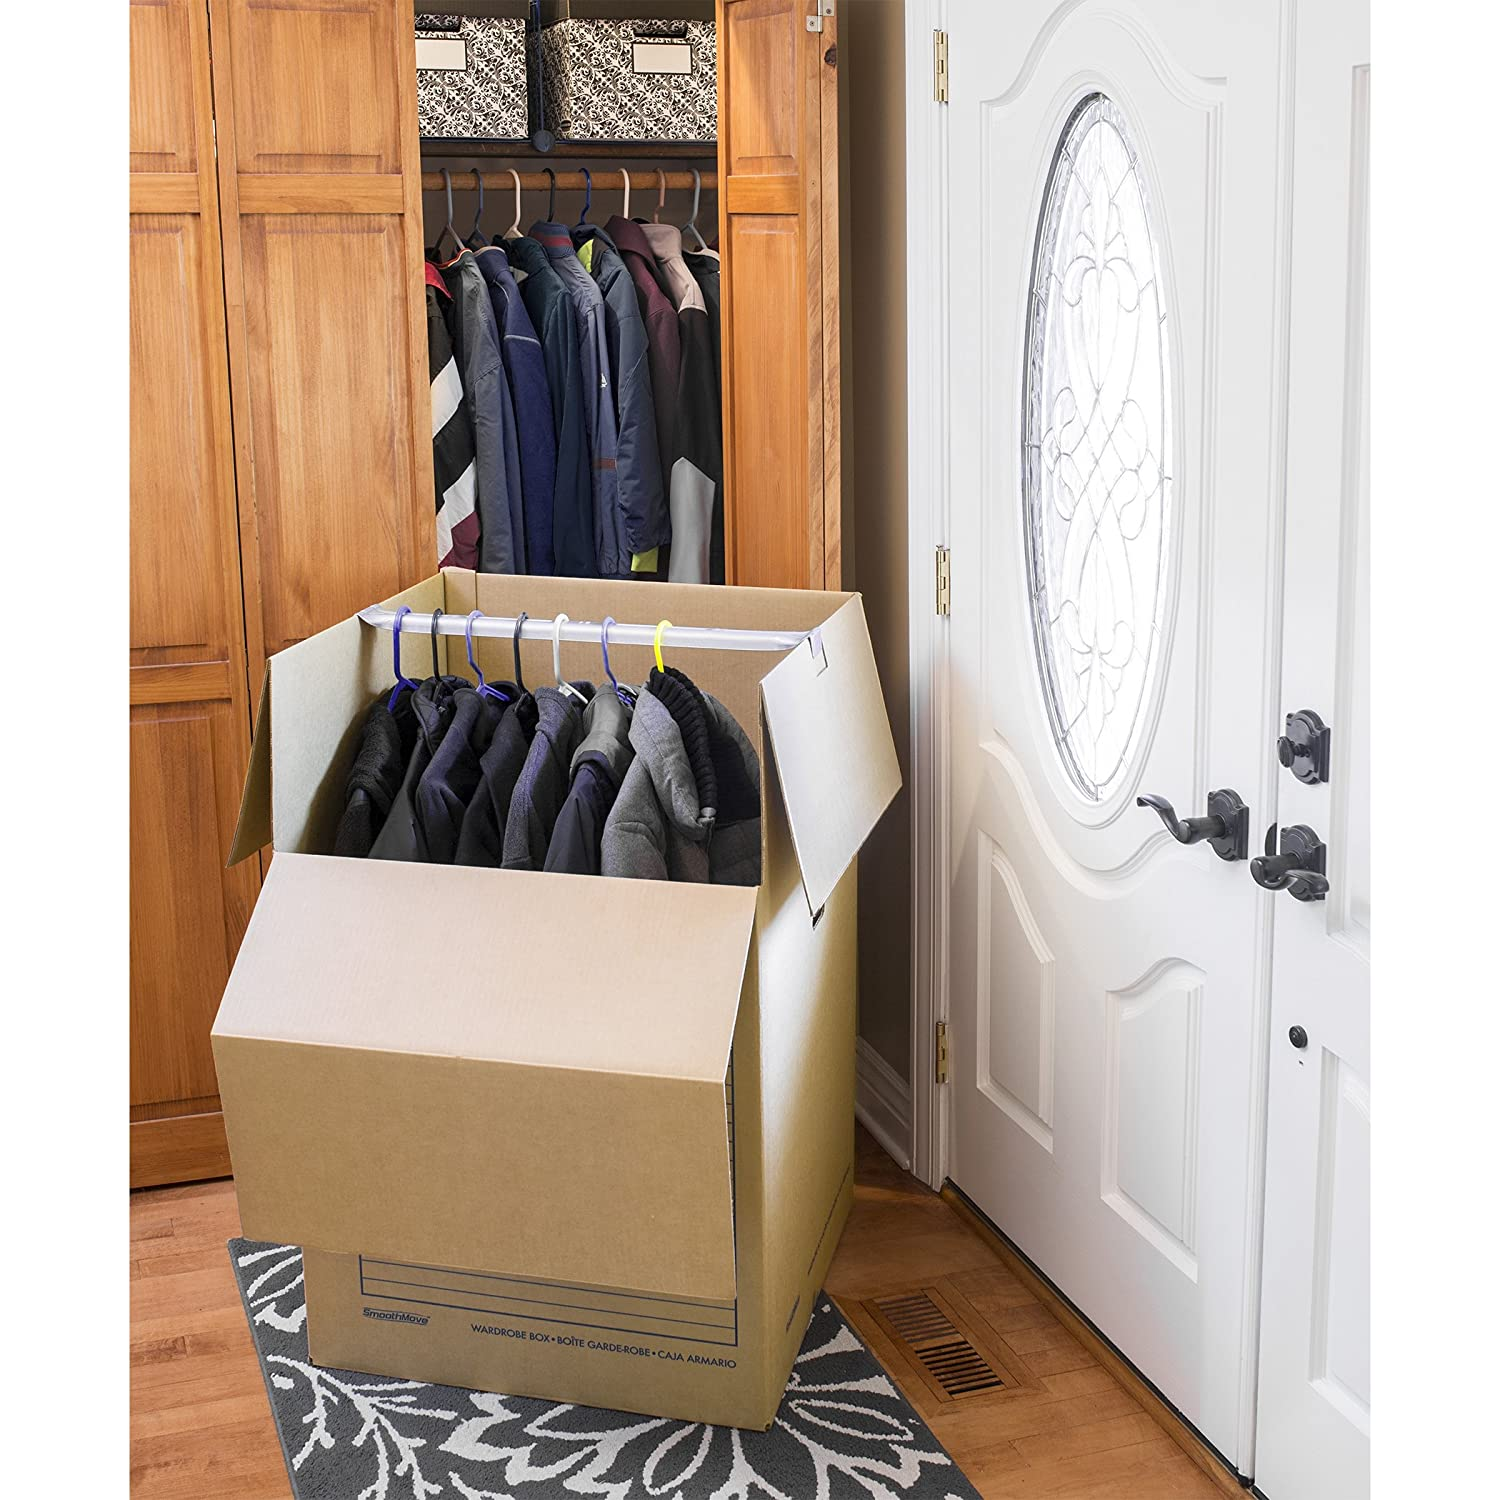 Bankers Box SmoothMove Wardrobe Box, 24 x 24 x 40 Inches, 3 Pack (7711001) Fellowes